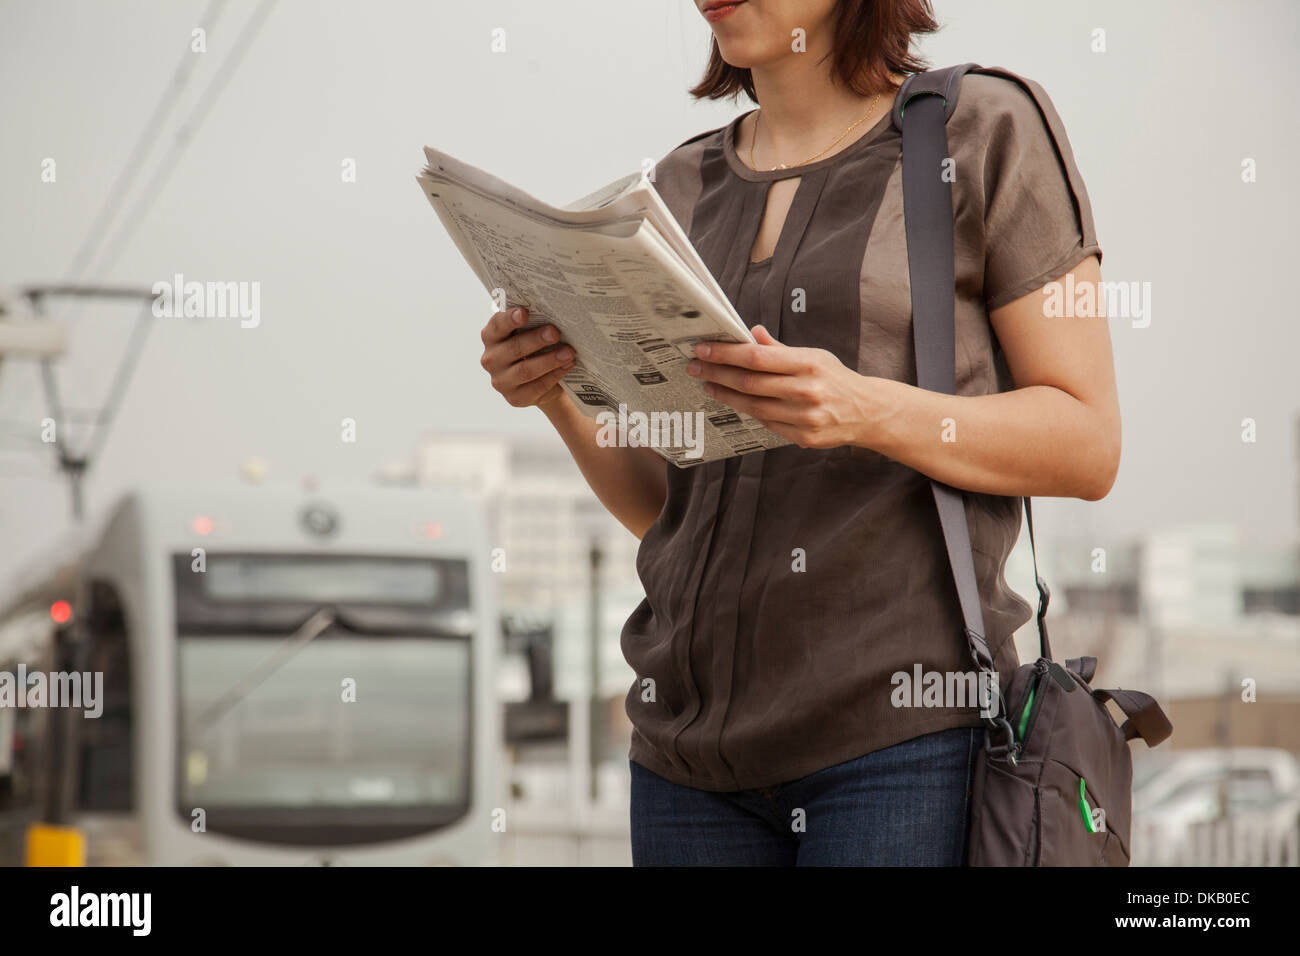 Commuter reading newspaper whilst waiting at station, Los Angeles, California, USA - Stock Image